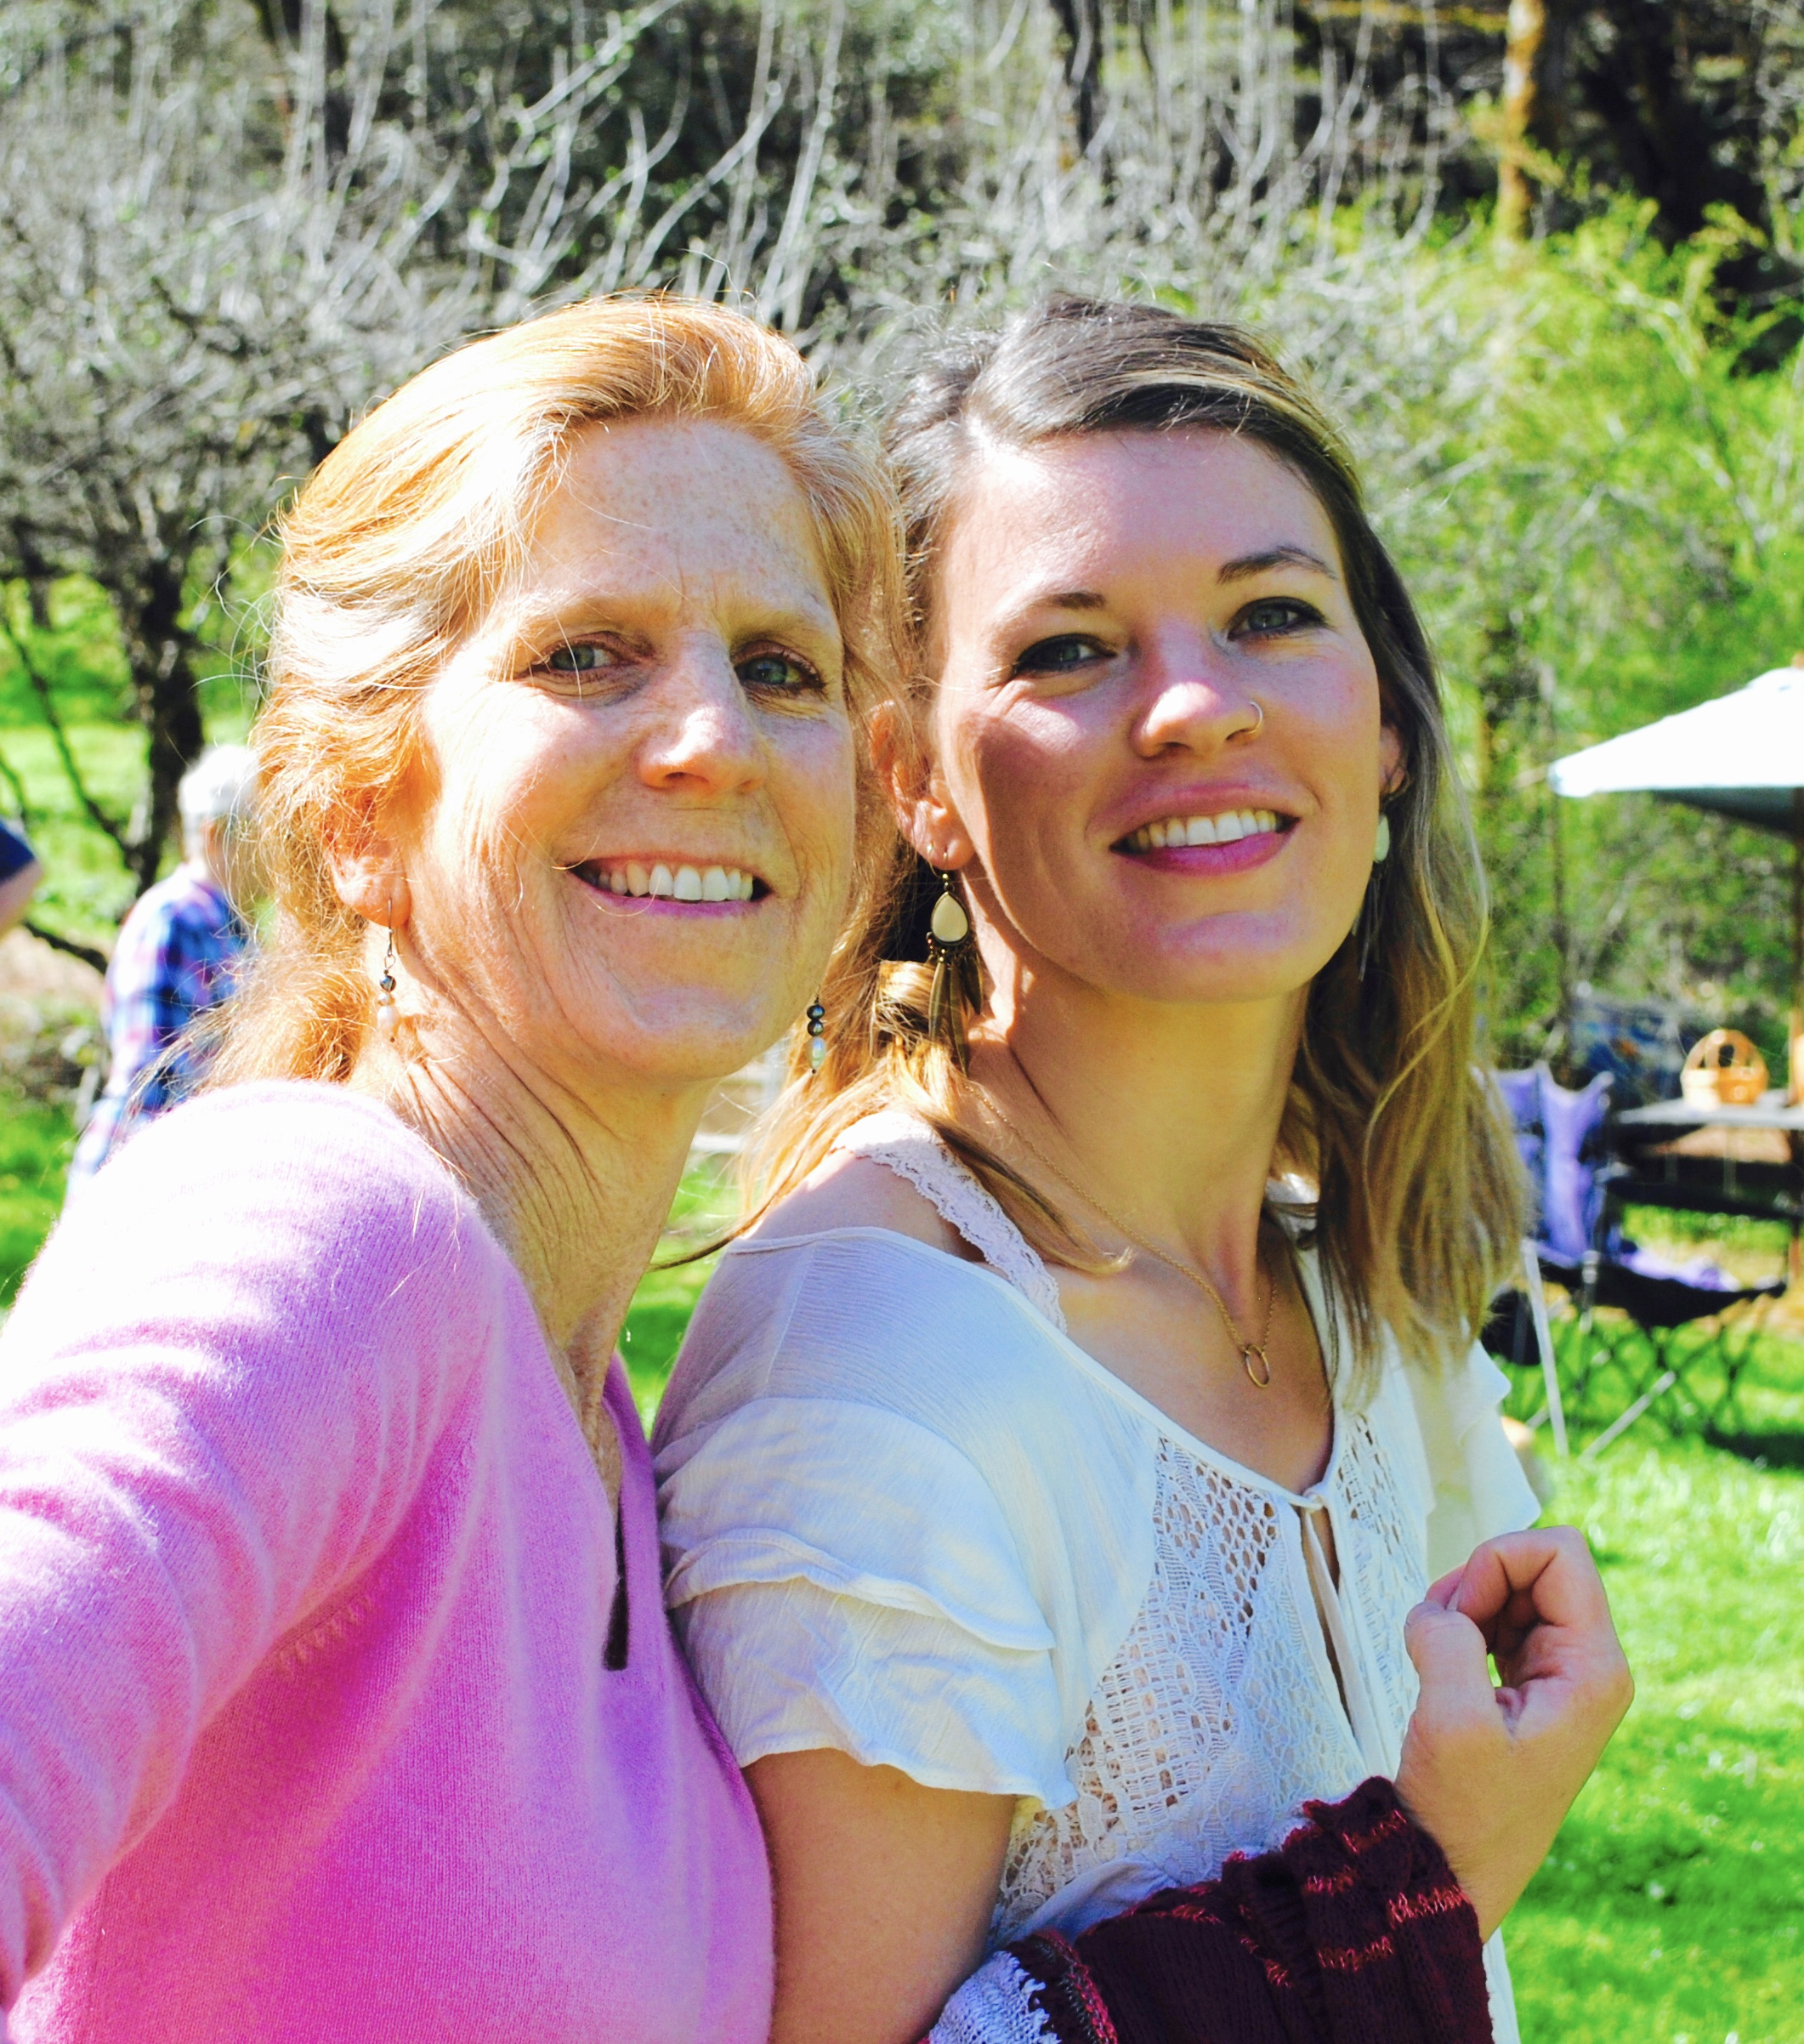 Susan and her daughter Erica.